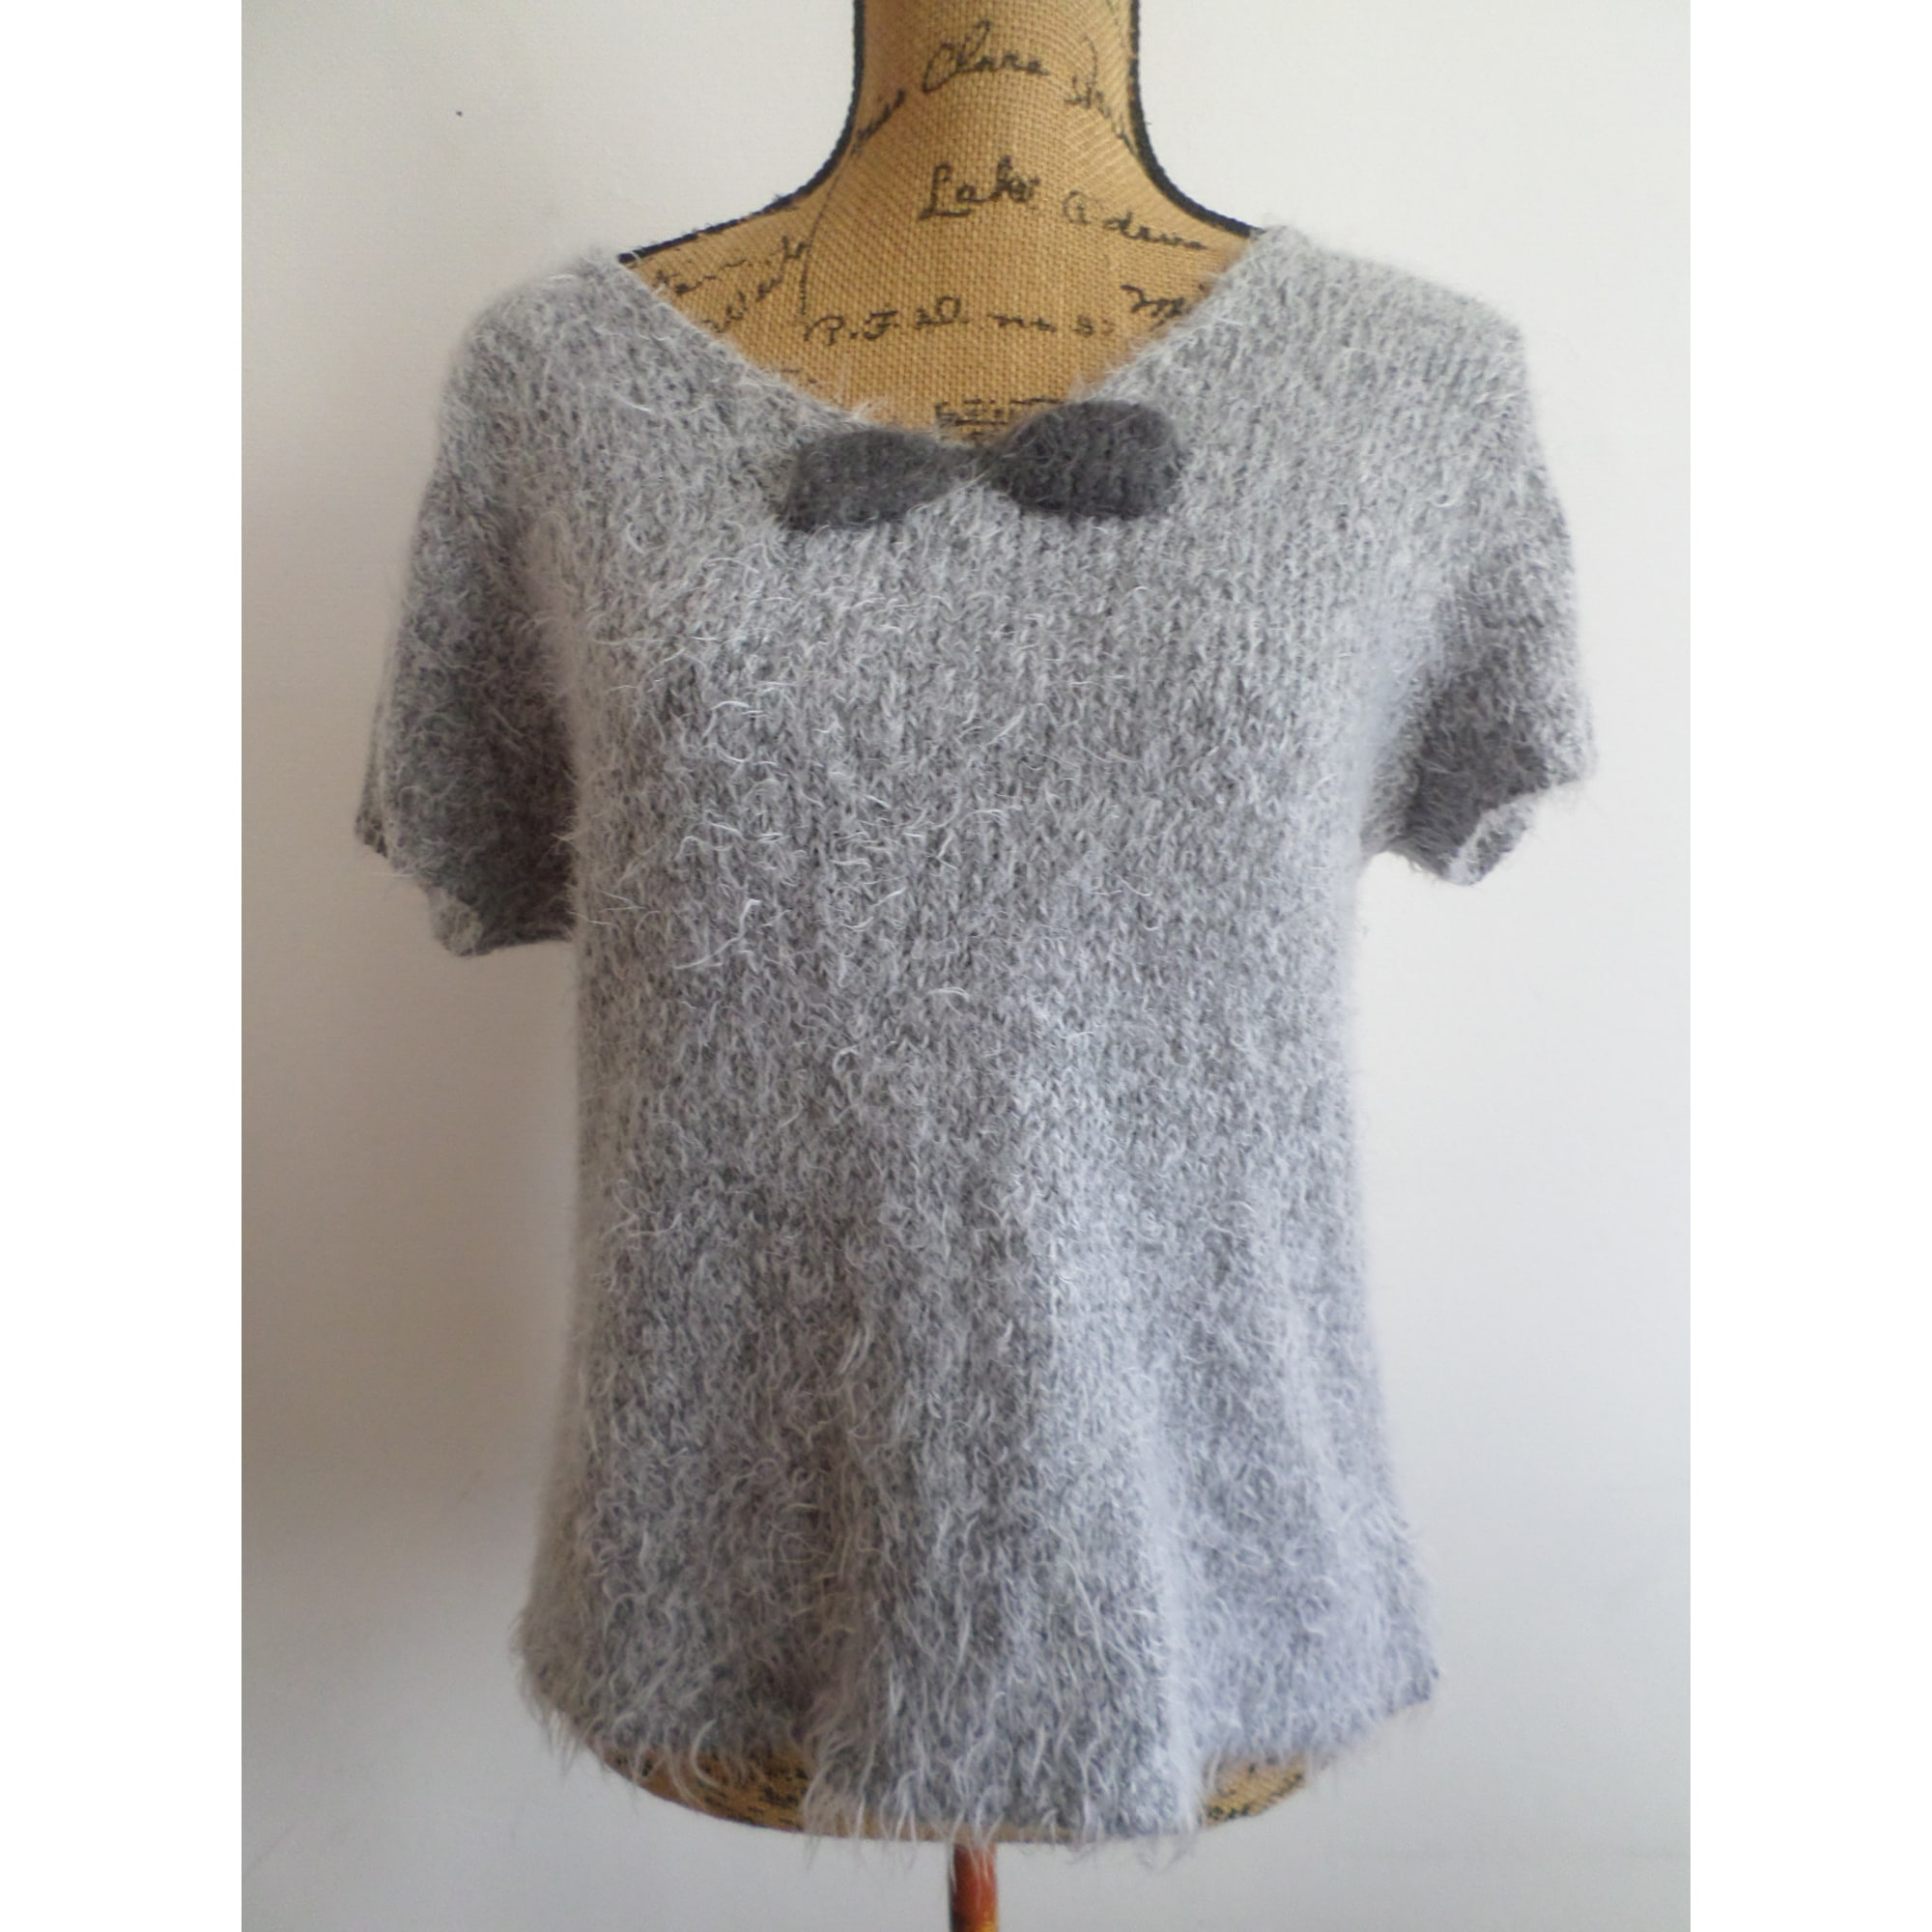 Top, tee-shirt ARMAND THIERY Gris, anthracite